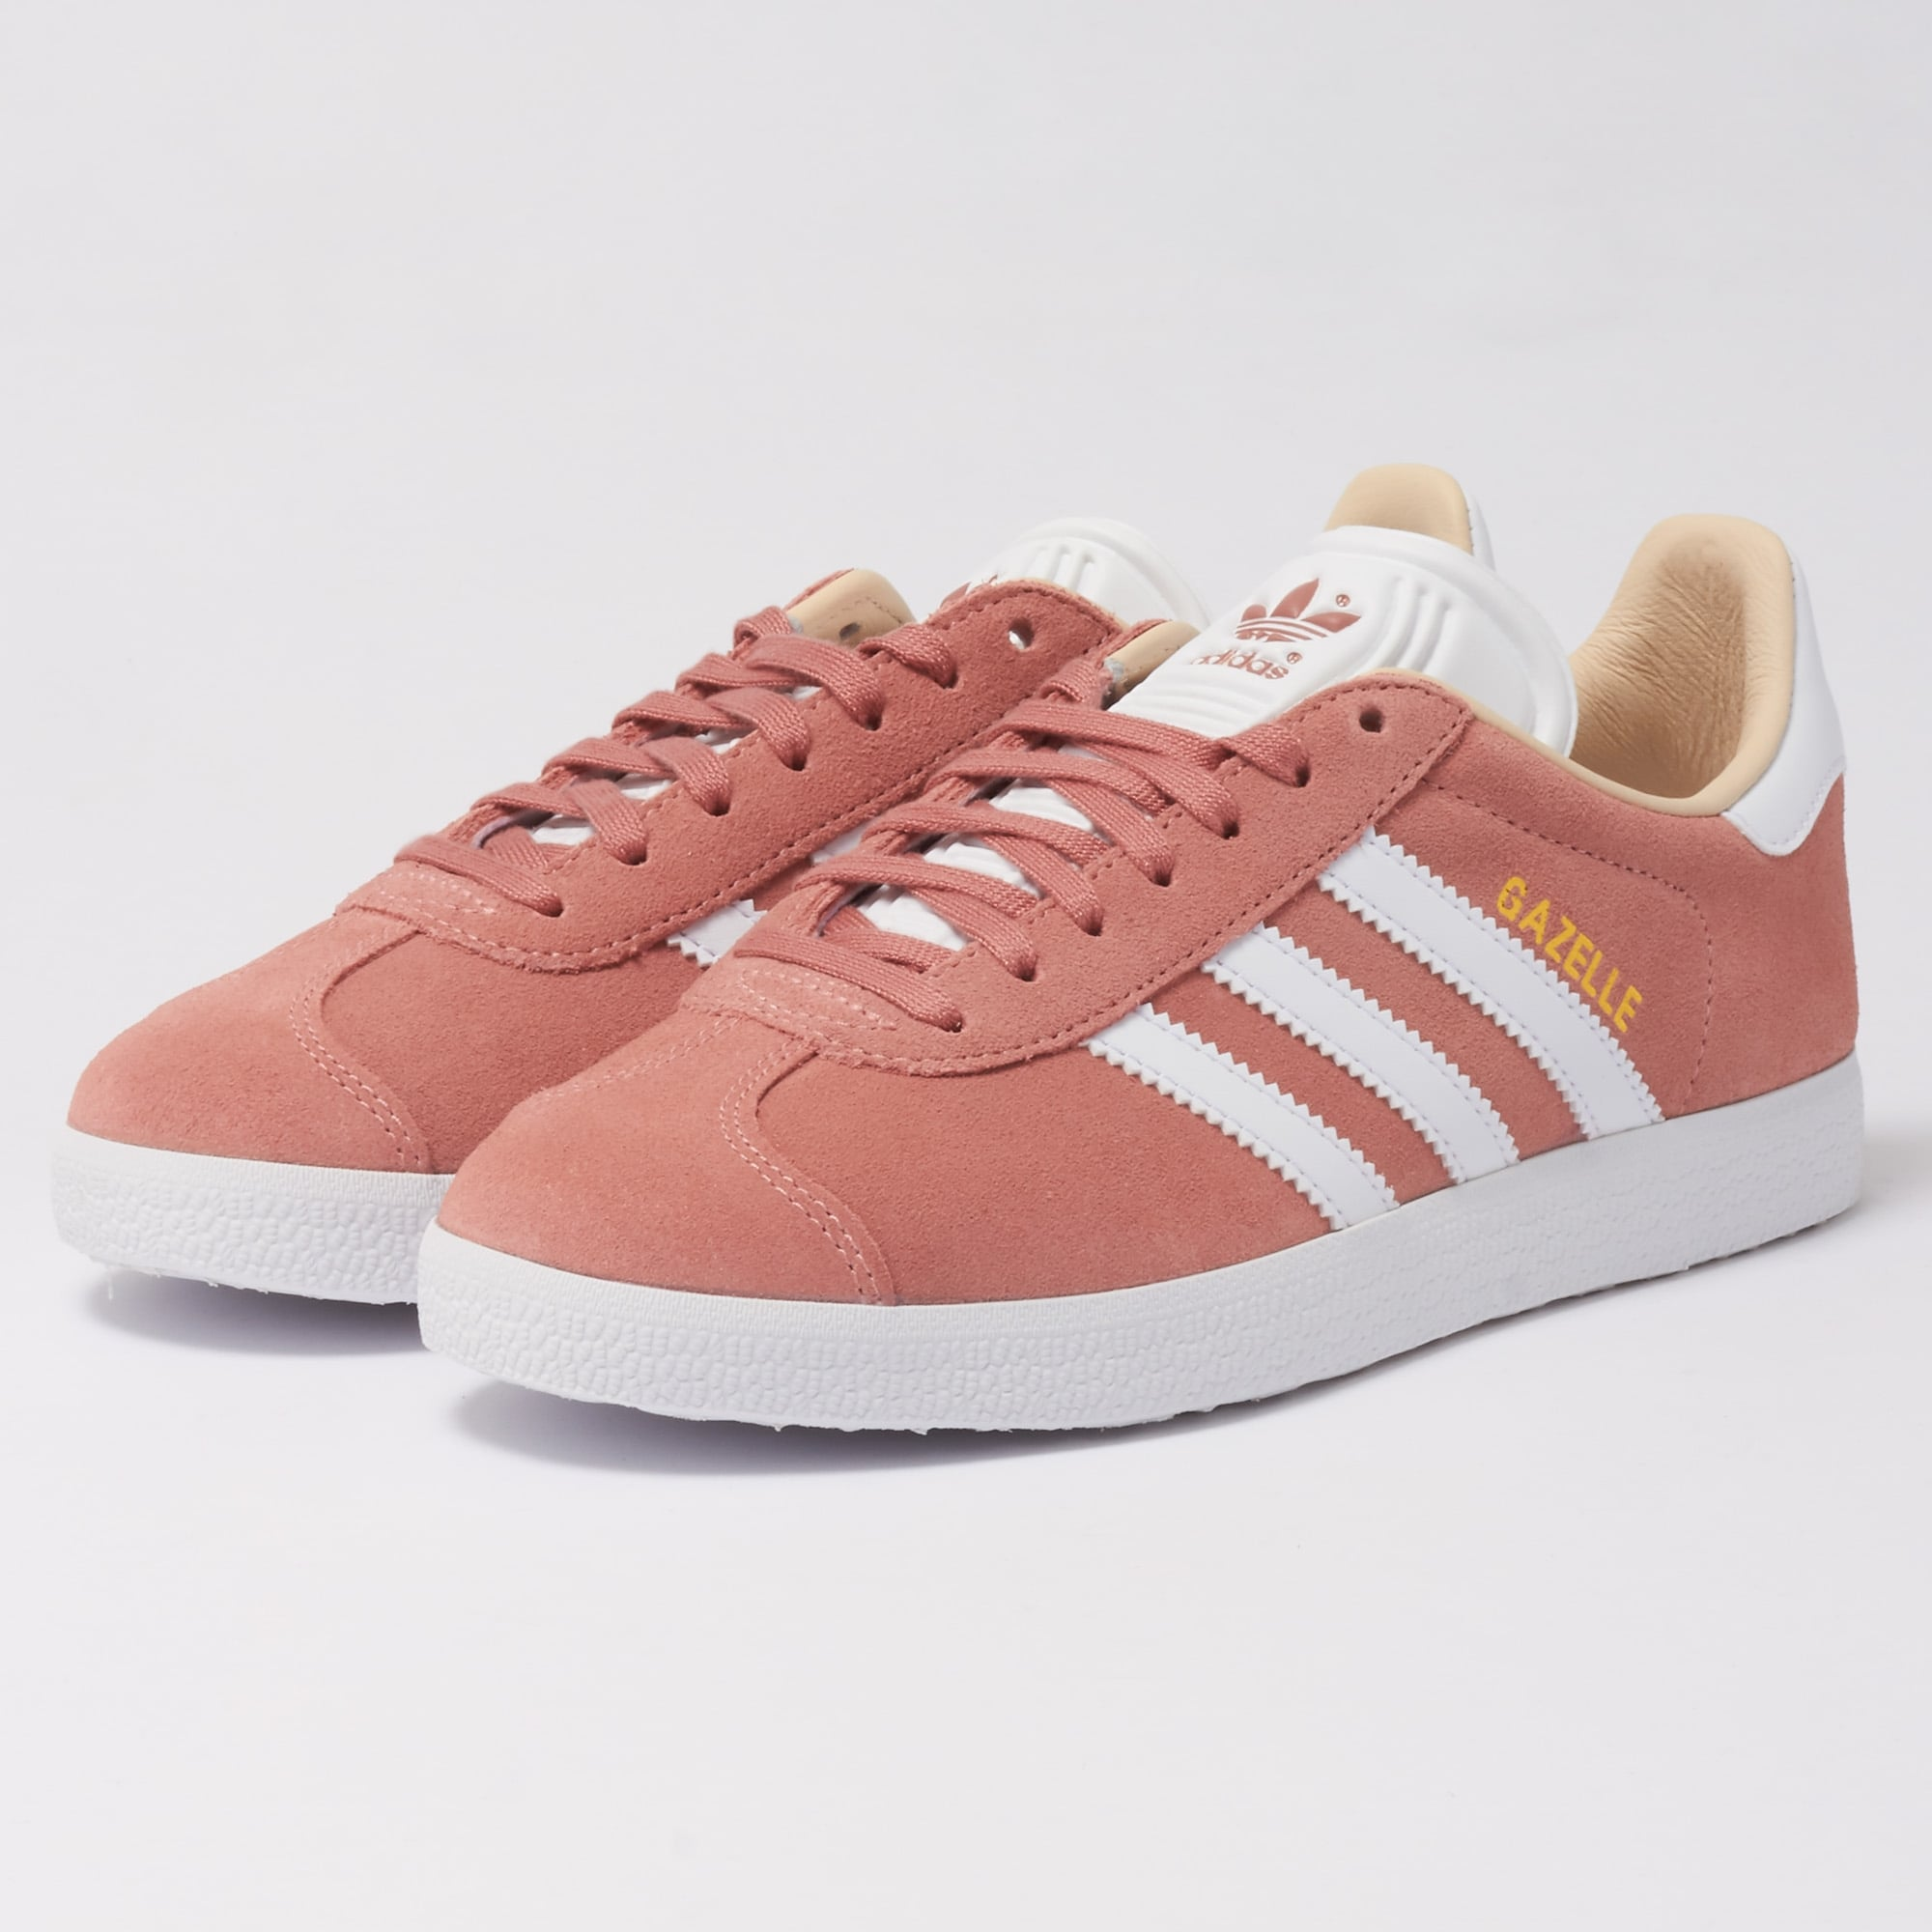 Adidas Originals Womens Gazelle Trainers  8c4d6043d2